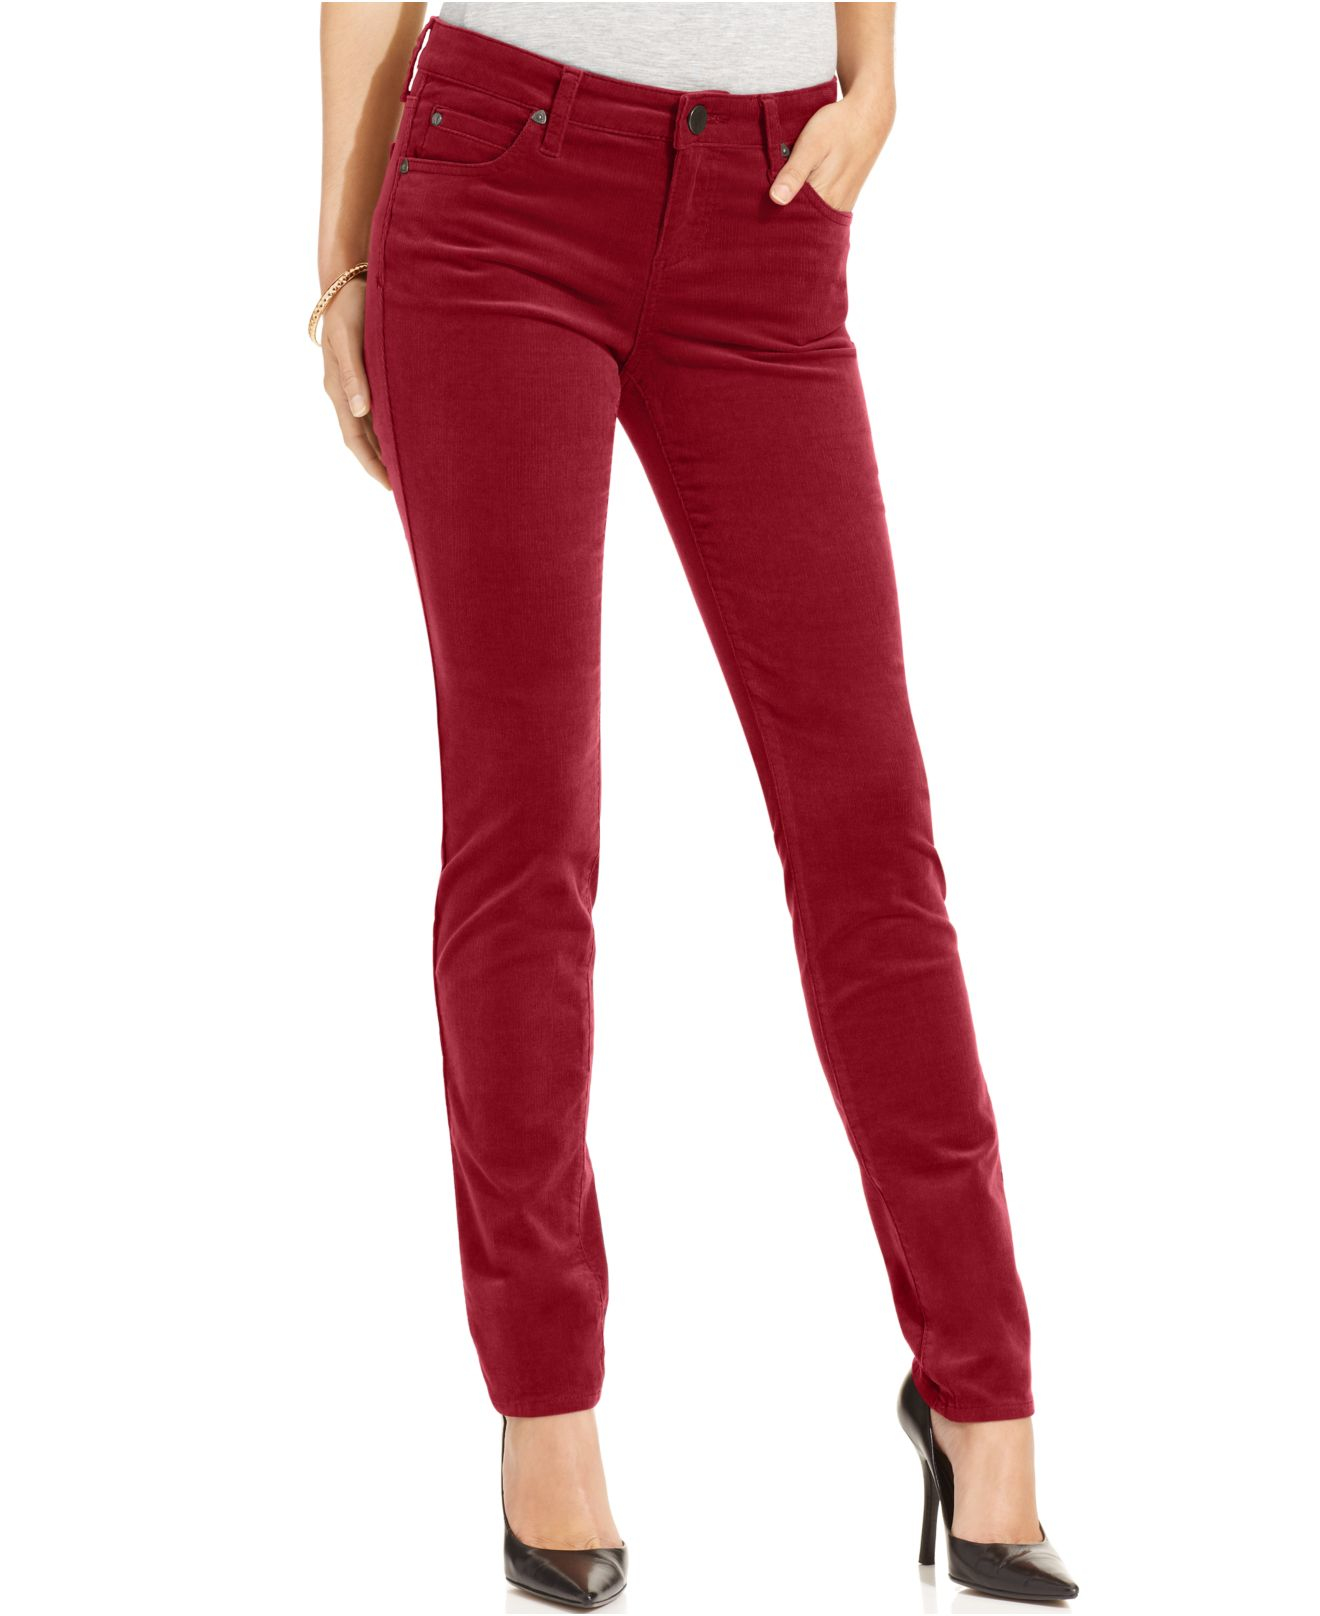 Kut from the kloth Diana Skinny Corduroy Pants in Red | Lyst